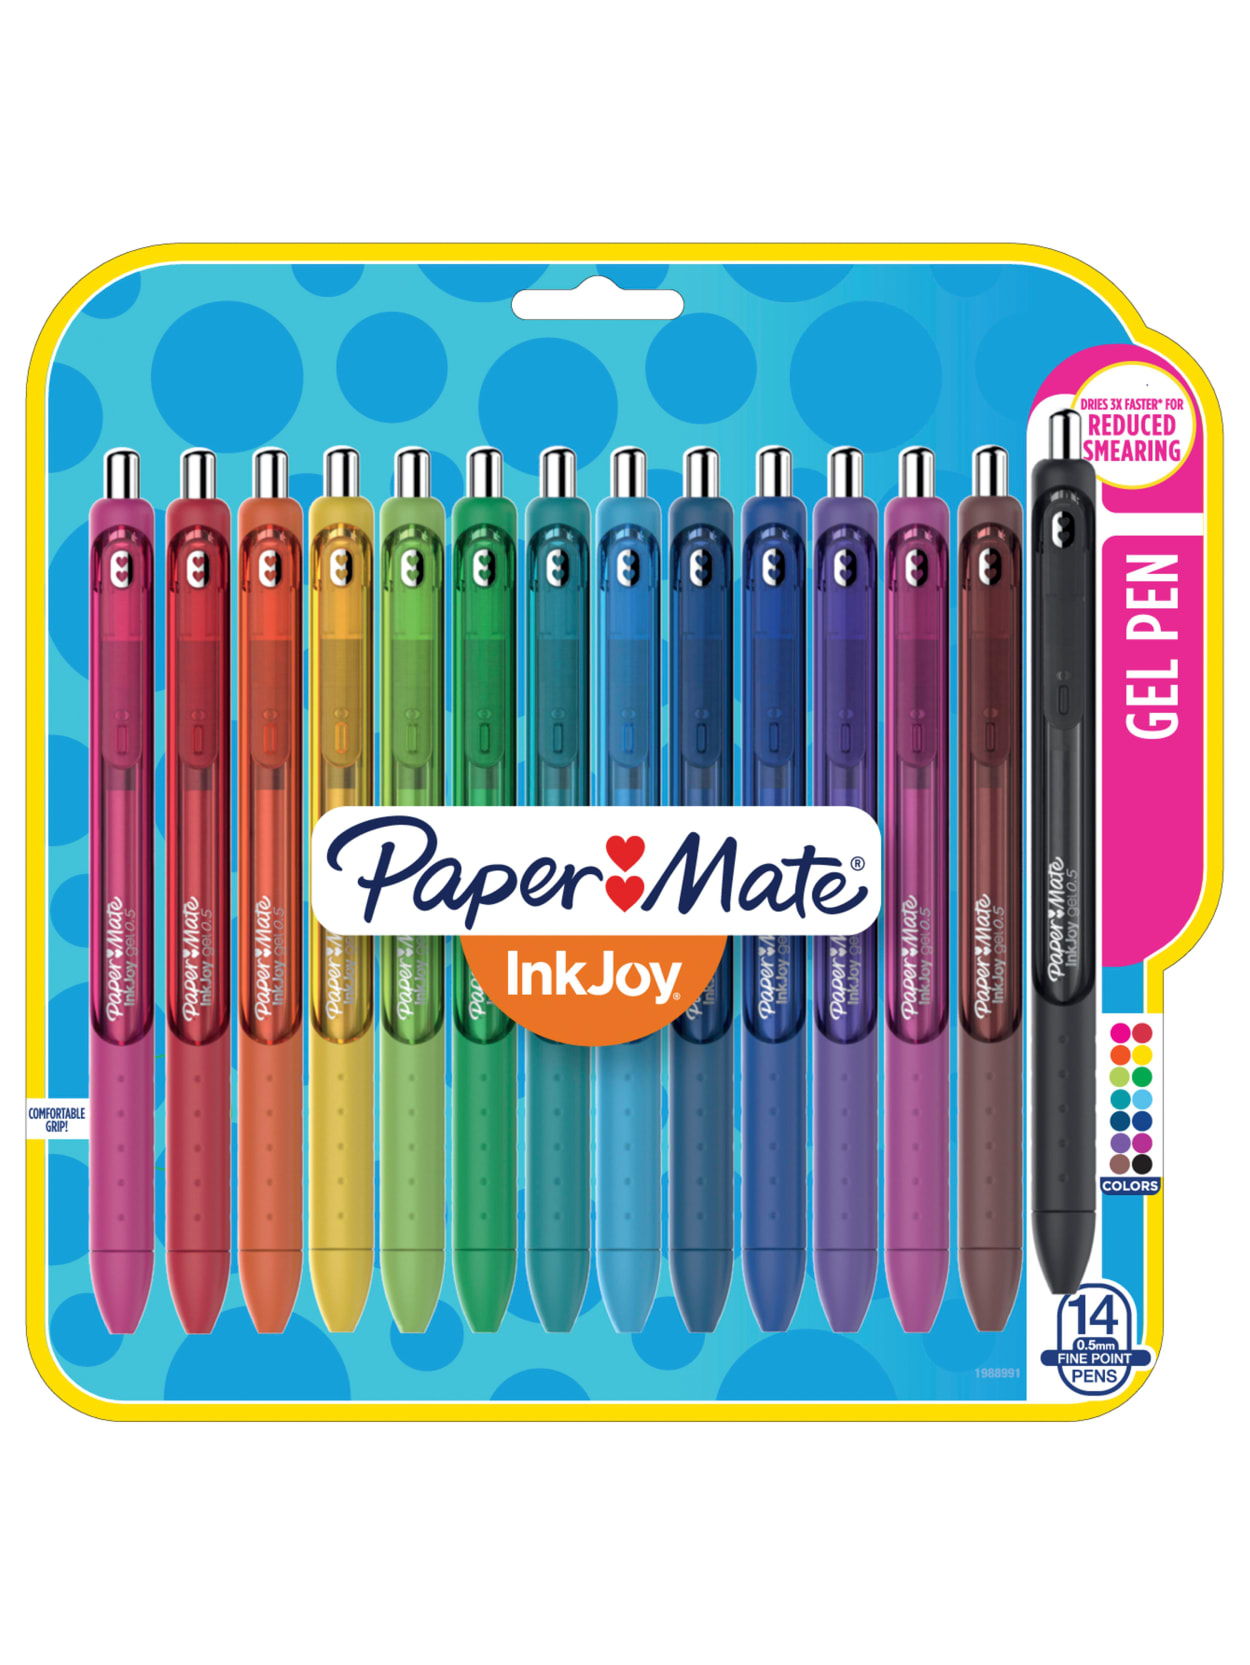 Paper Mate InkJoy stationery set 2 retractable pencils 4 erasable highlighters